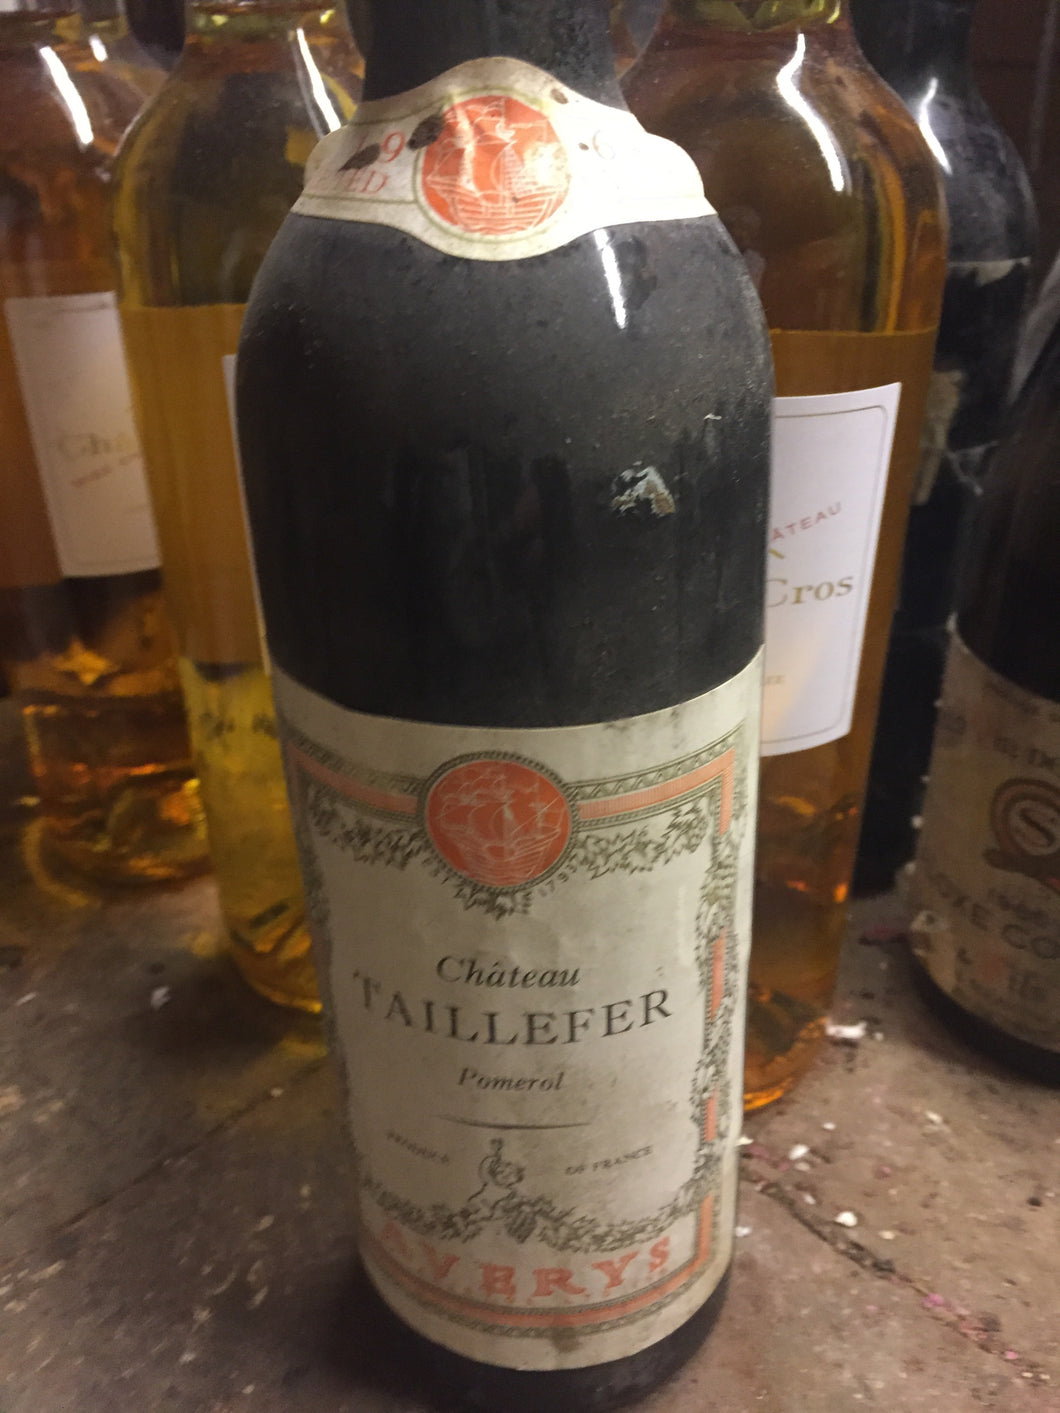 1964 Chateau Taillefer - Benson Fine Wines